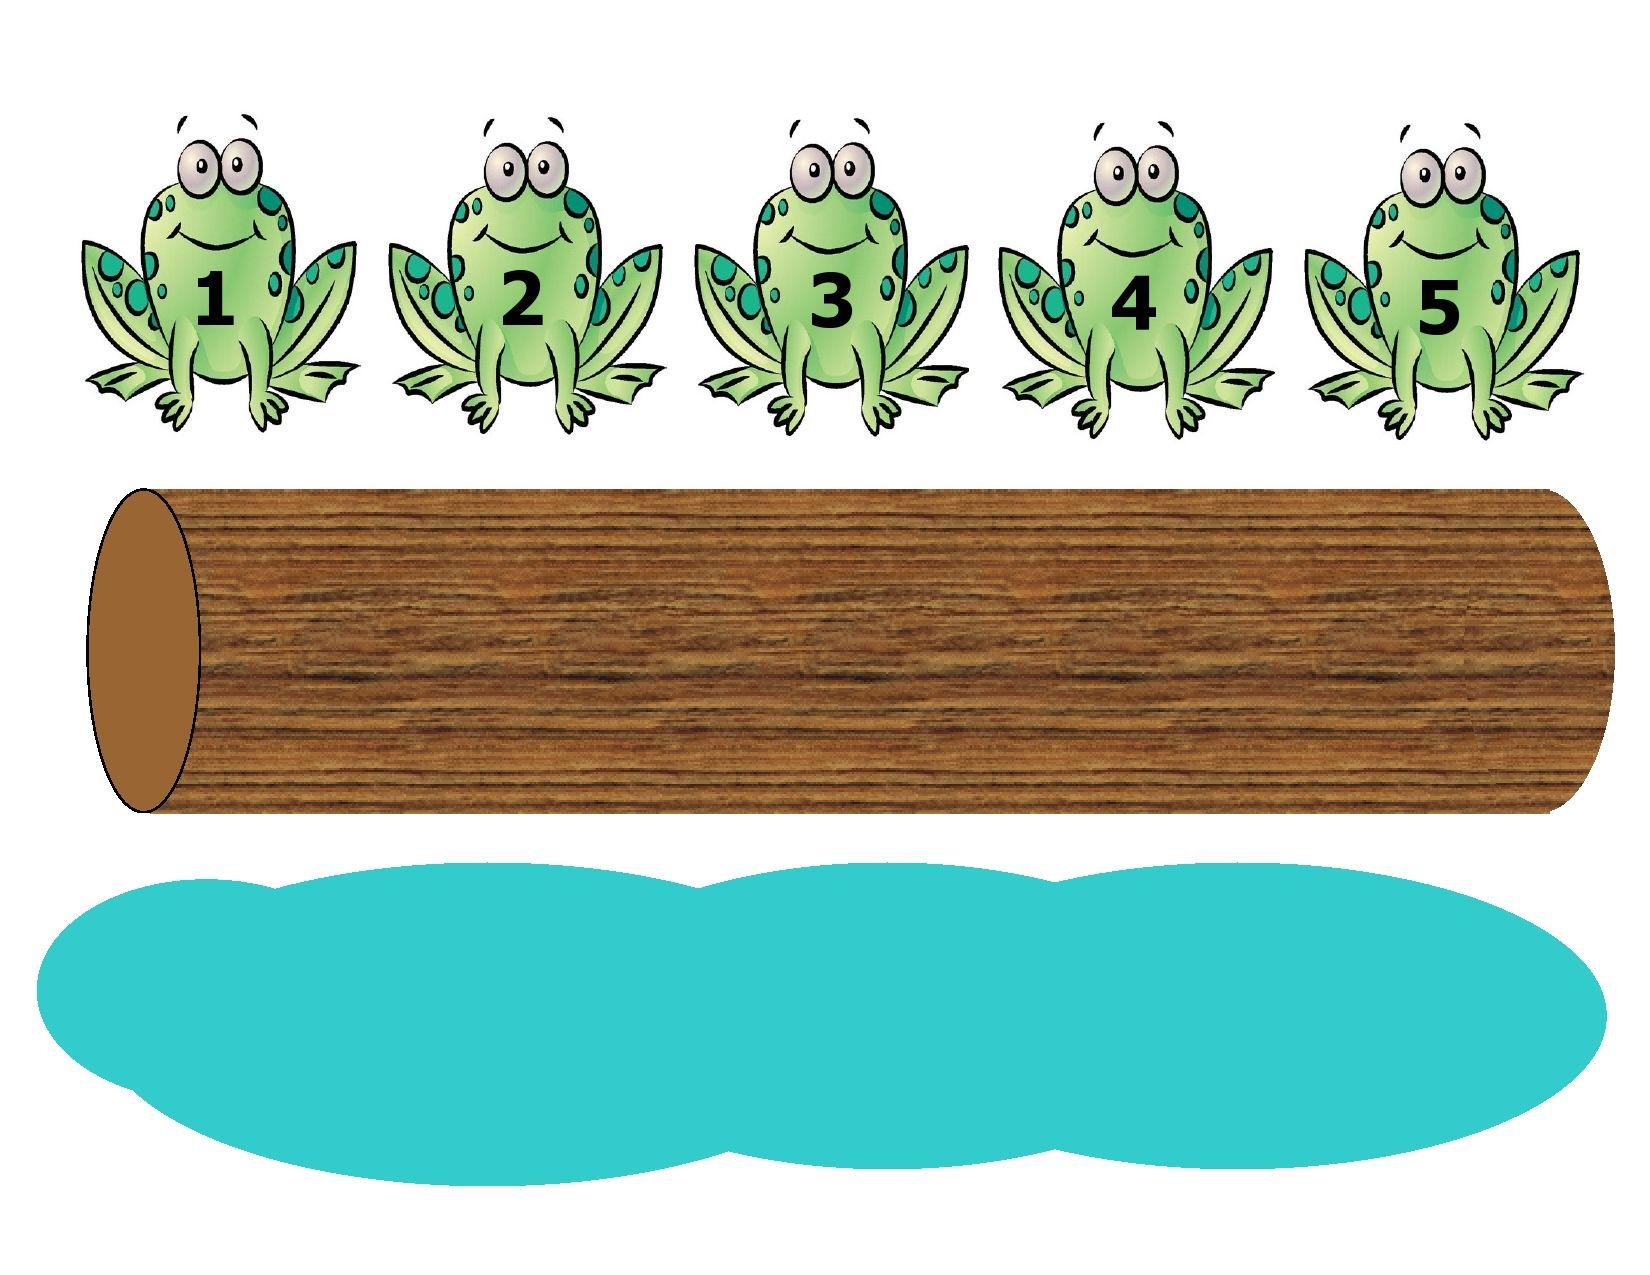 Five Green And Speckled Frogs Fingerplay Is A Fun Way To Introduce The Concept Of Subtraction To